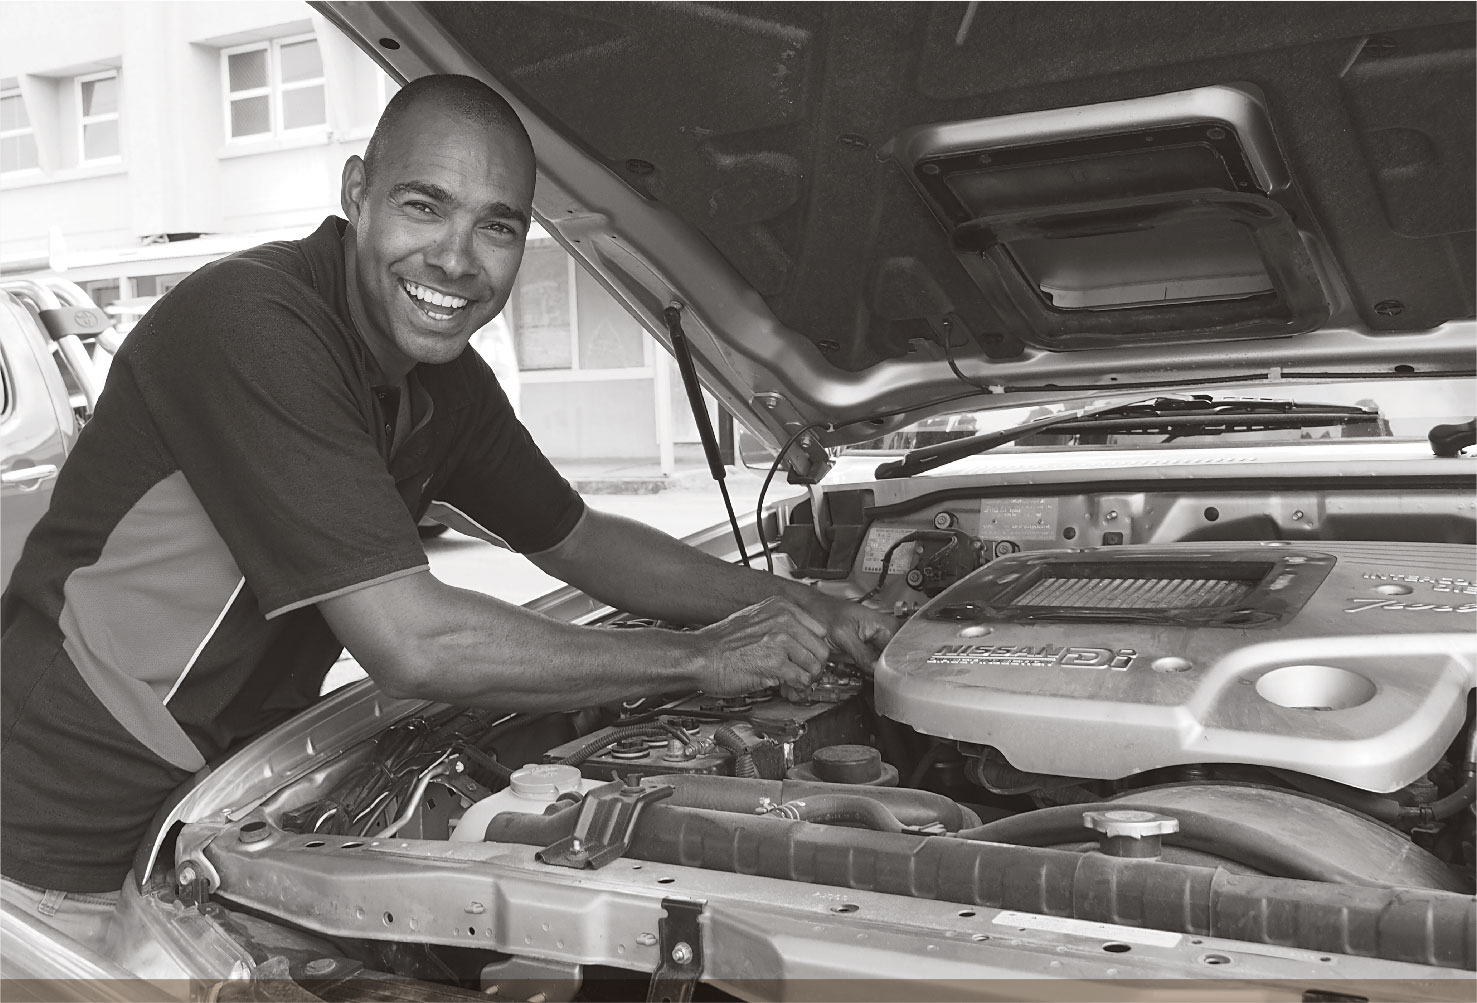 a photograph of HAMMOND ISLAND MECHANIC AND BUSINESS OWNER EUGENE DORANTE.